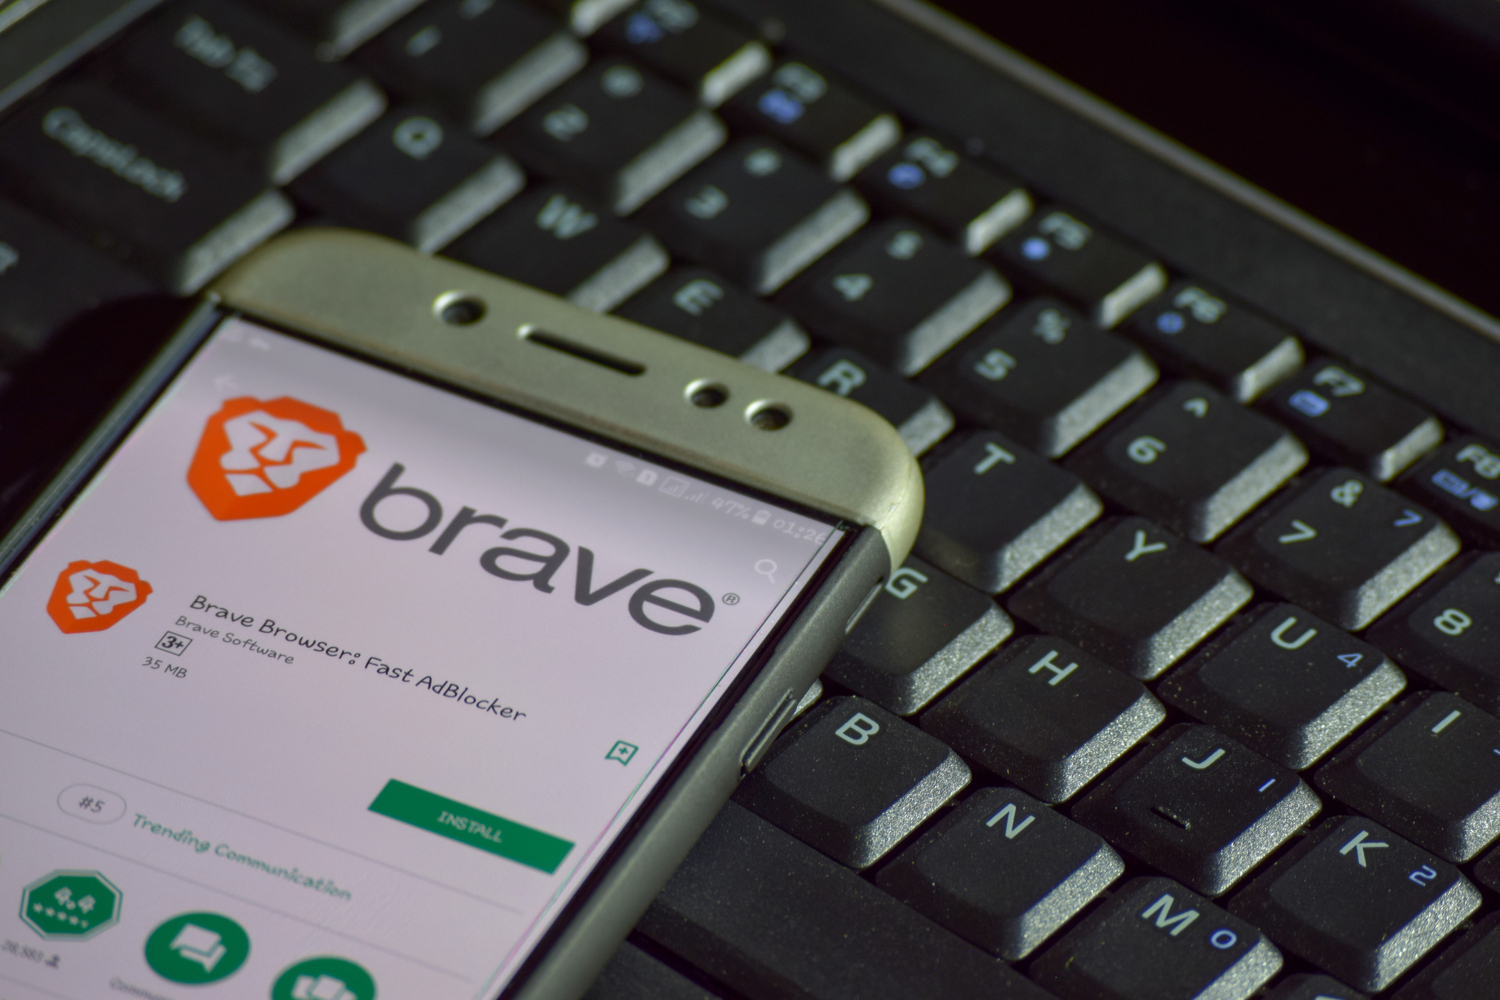 Brave Browser Sees 1,200% Increase of Registered Publishers Over Year